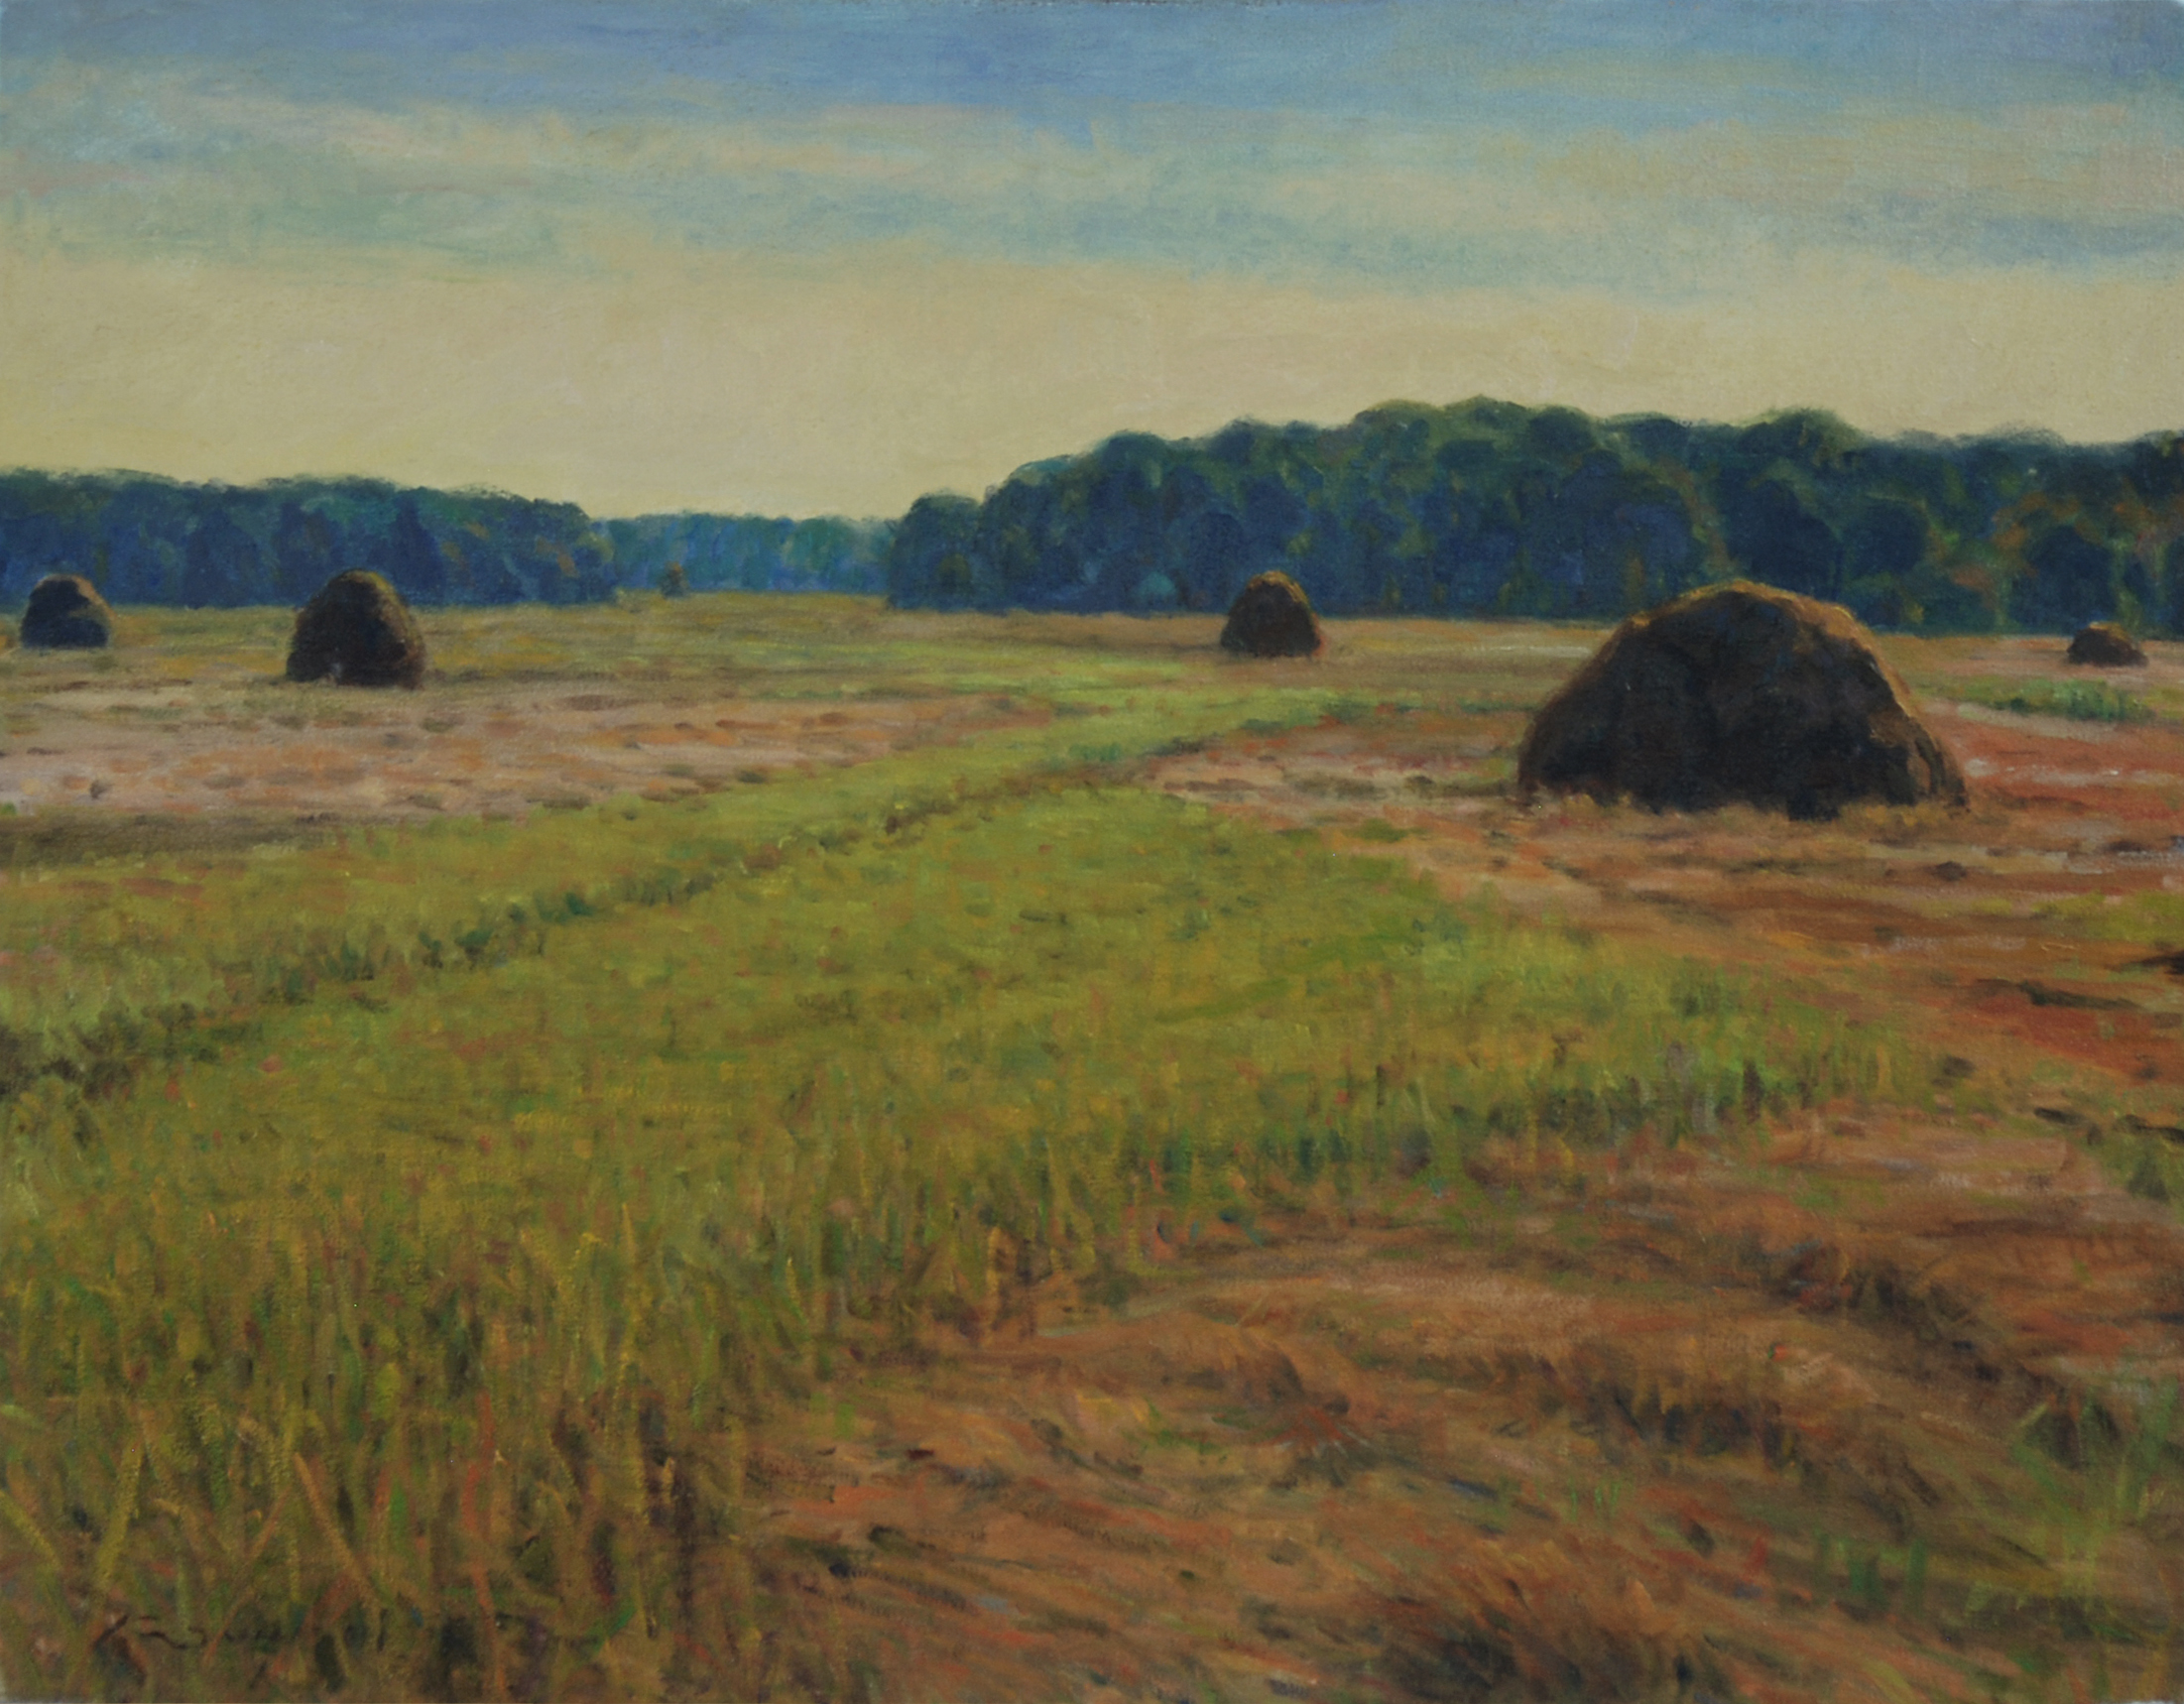 Summer Marsh, Oil on canvas, 22x28 inches.